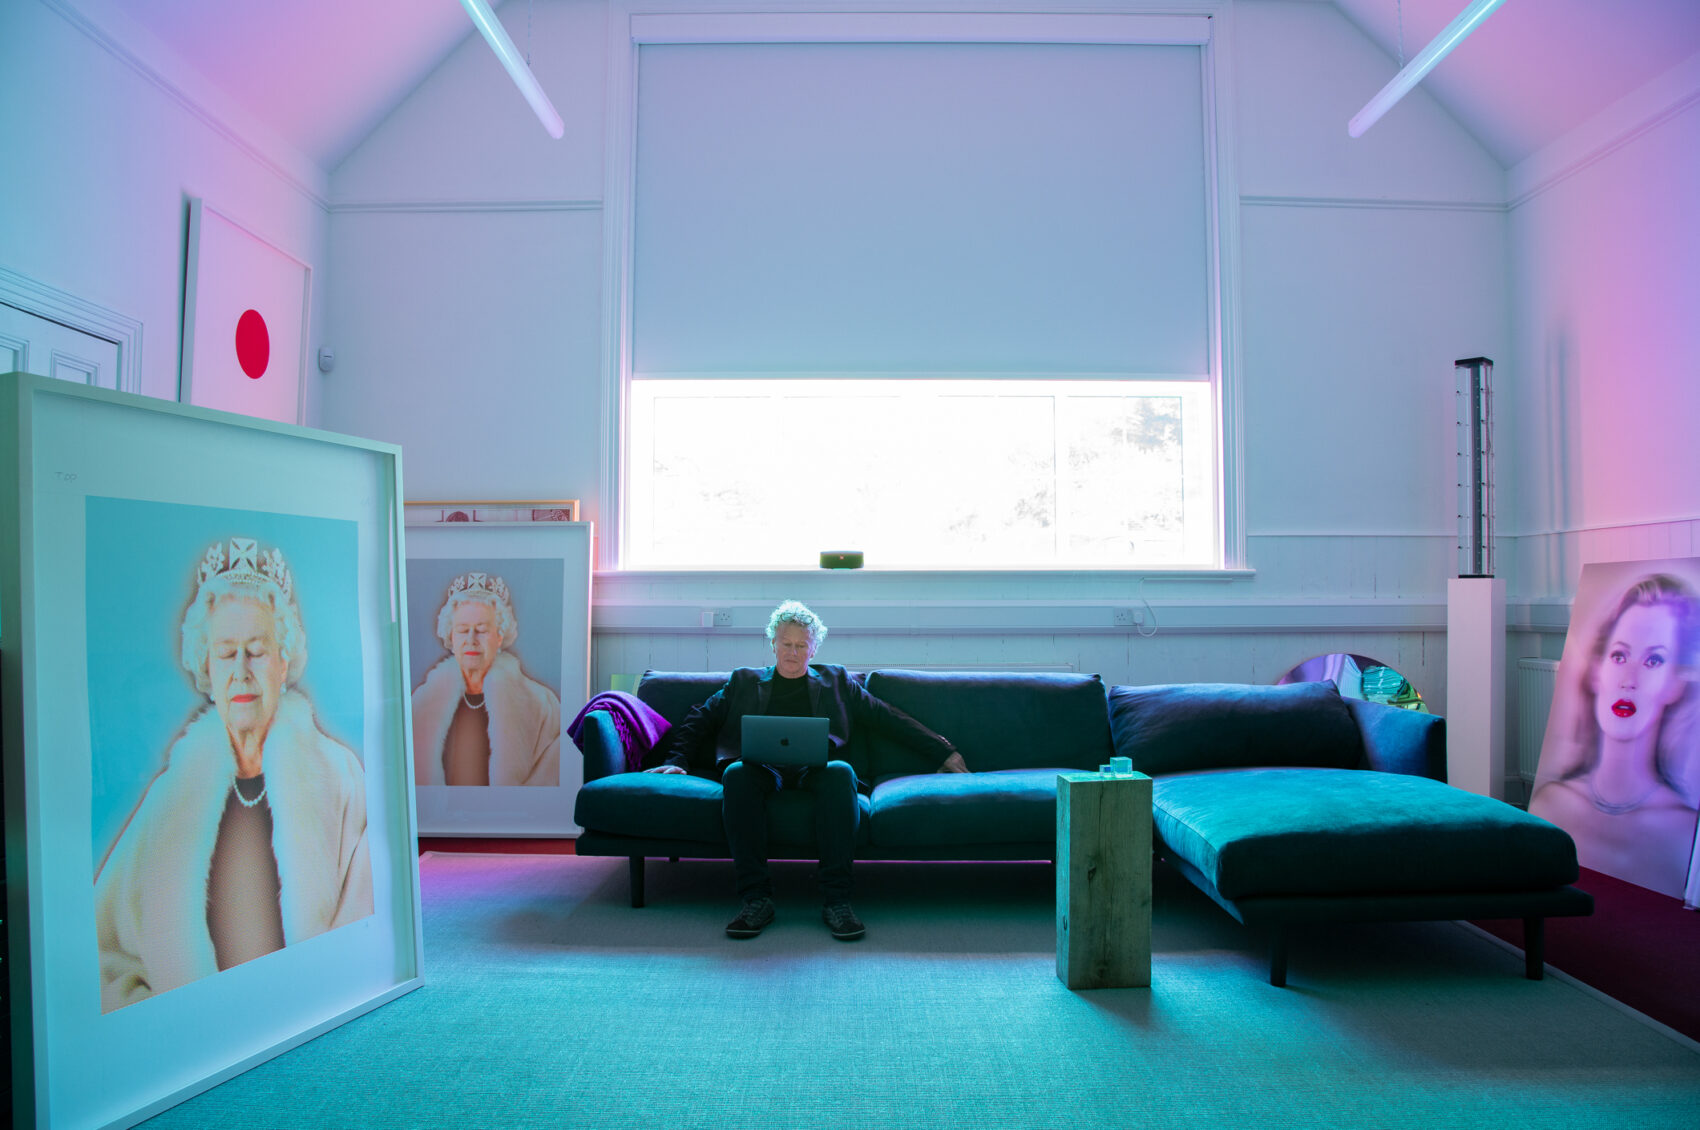 The Queen and Kate Moss by Chris Levine framed by Pauli Frames